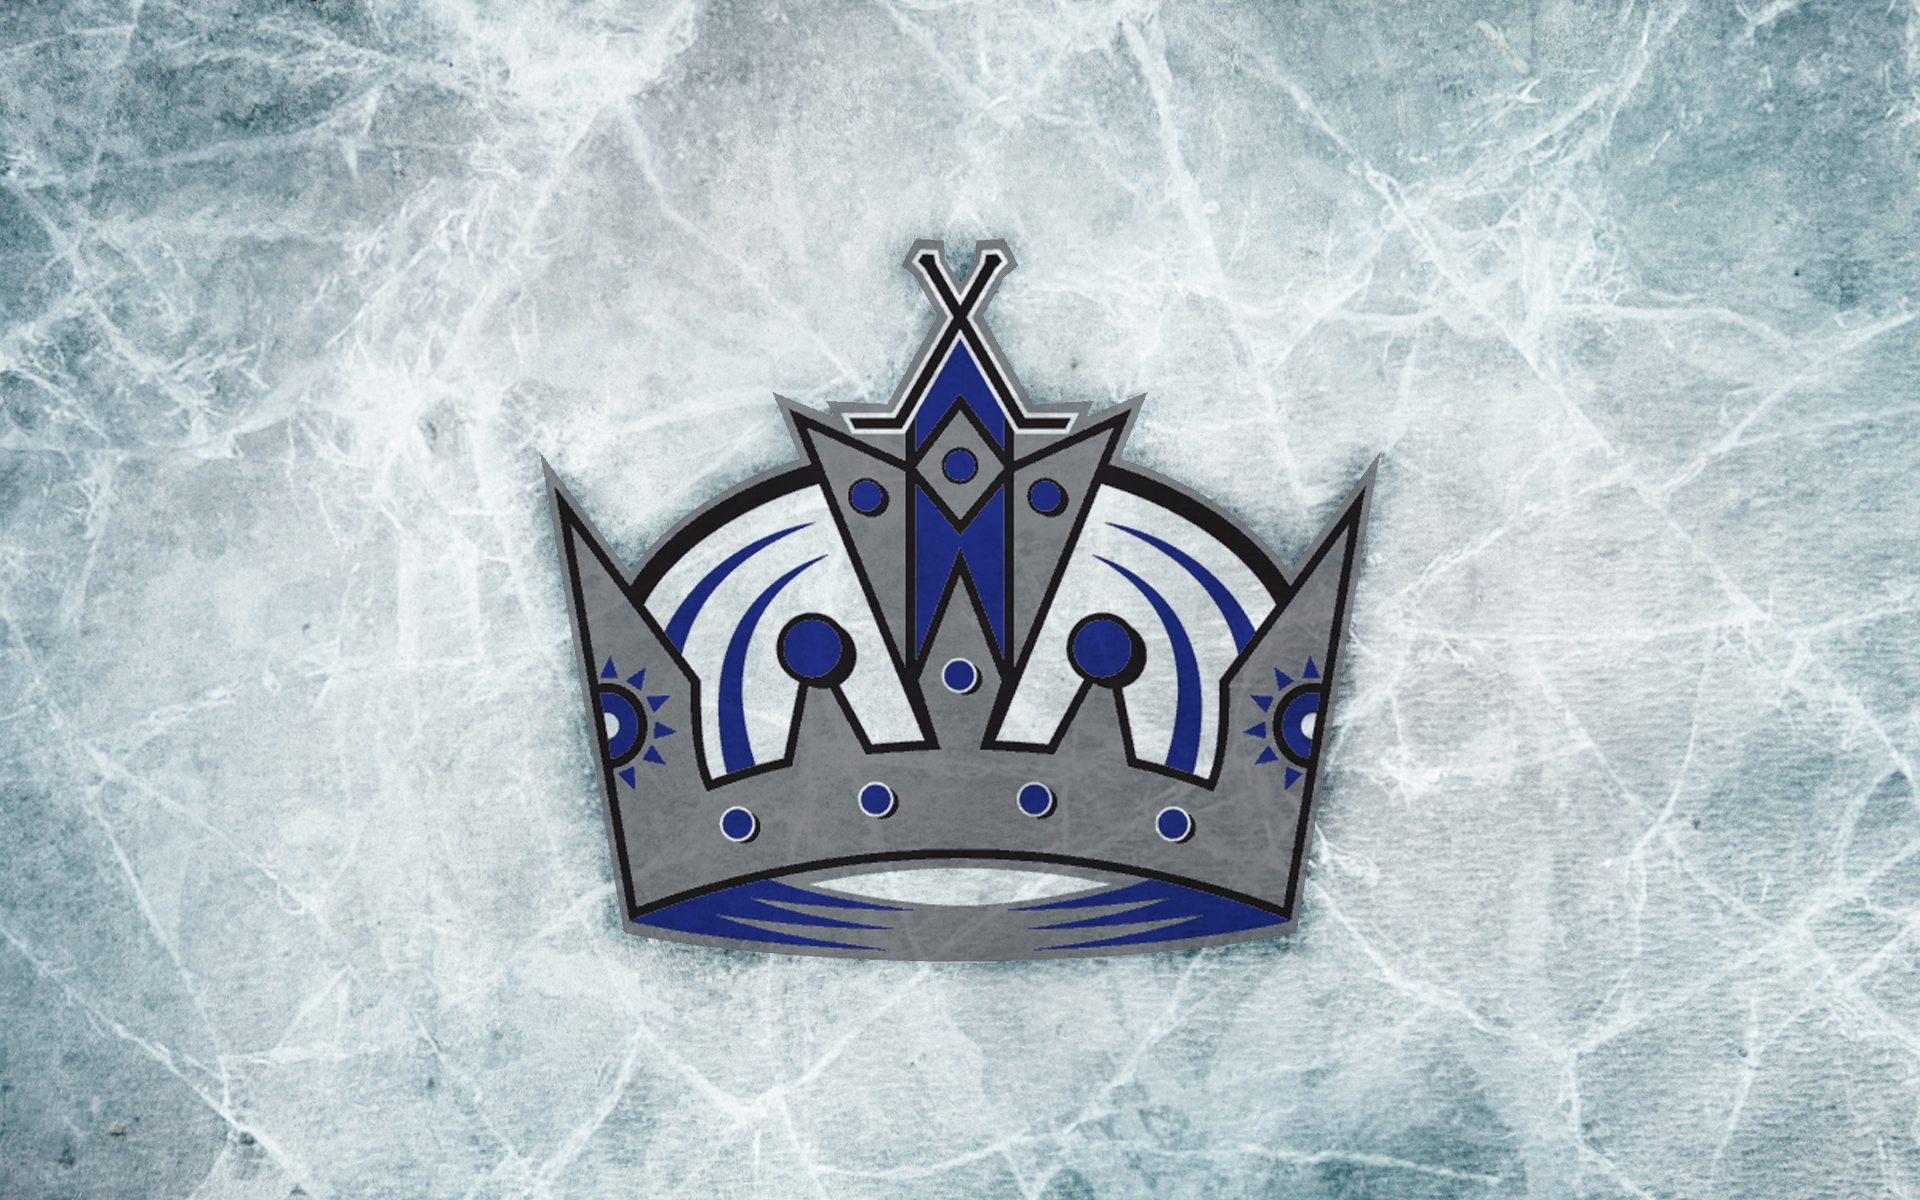 Los Angeles Kings wallpapers Los Angeles Kings background   Page 4 1920x1200